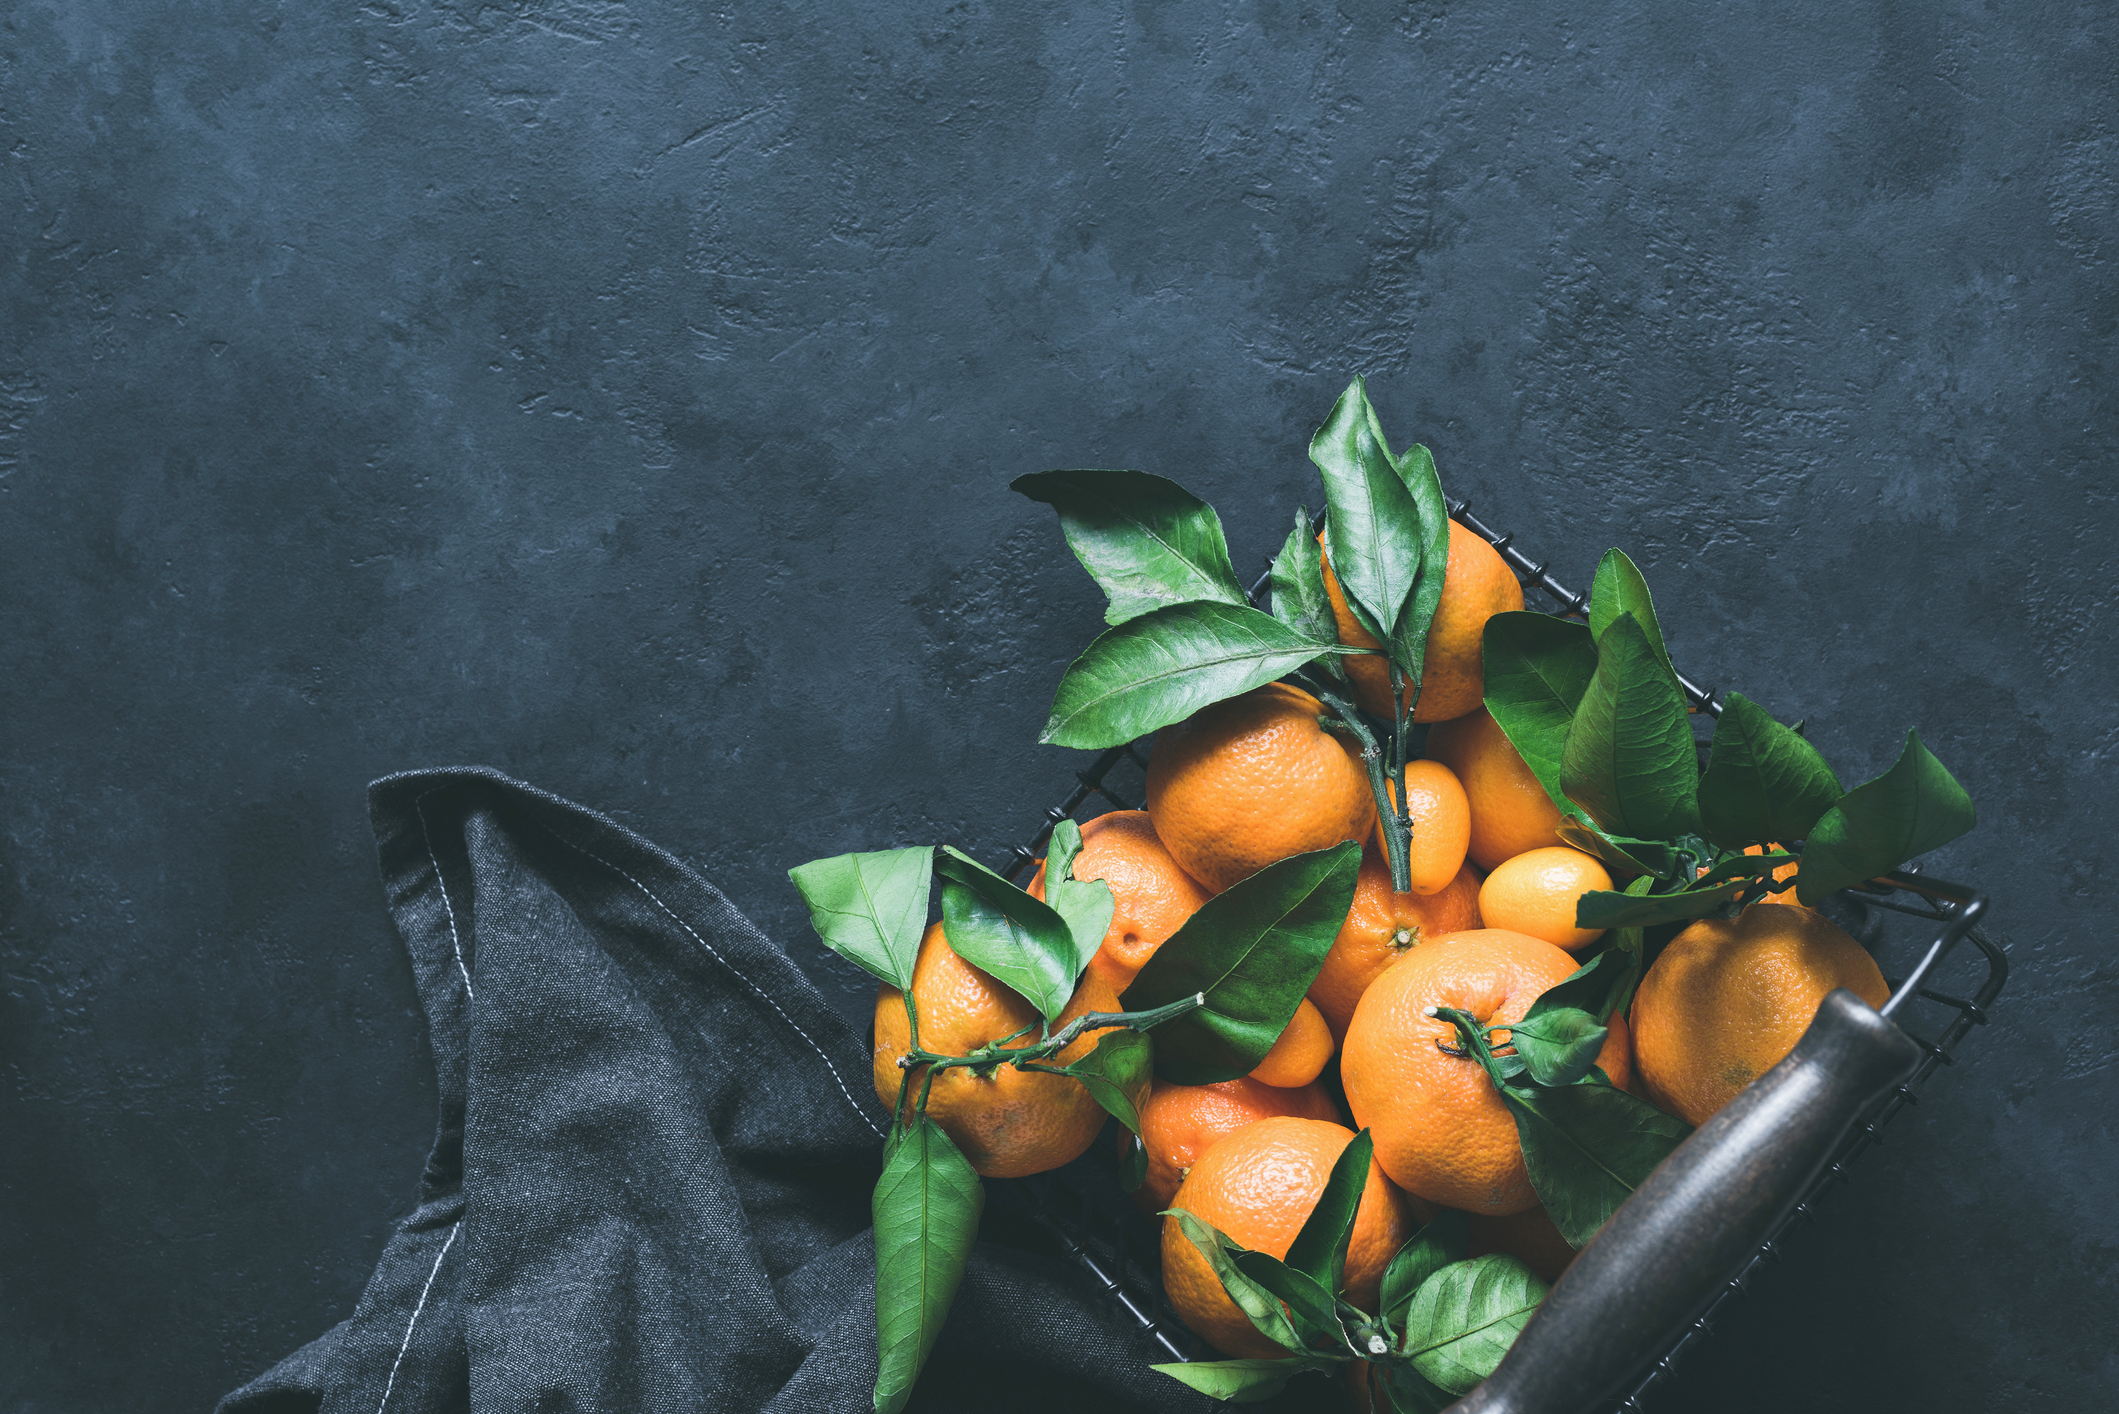 Mandarines or tangerines with leaves in basket on concrete background. Top view, copy space for text